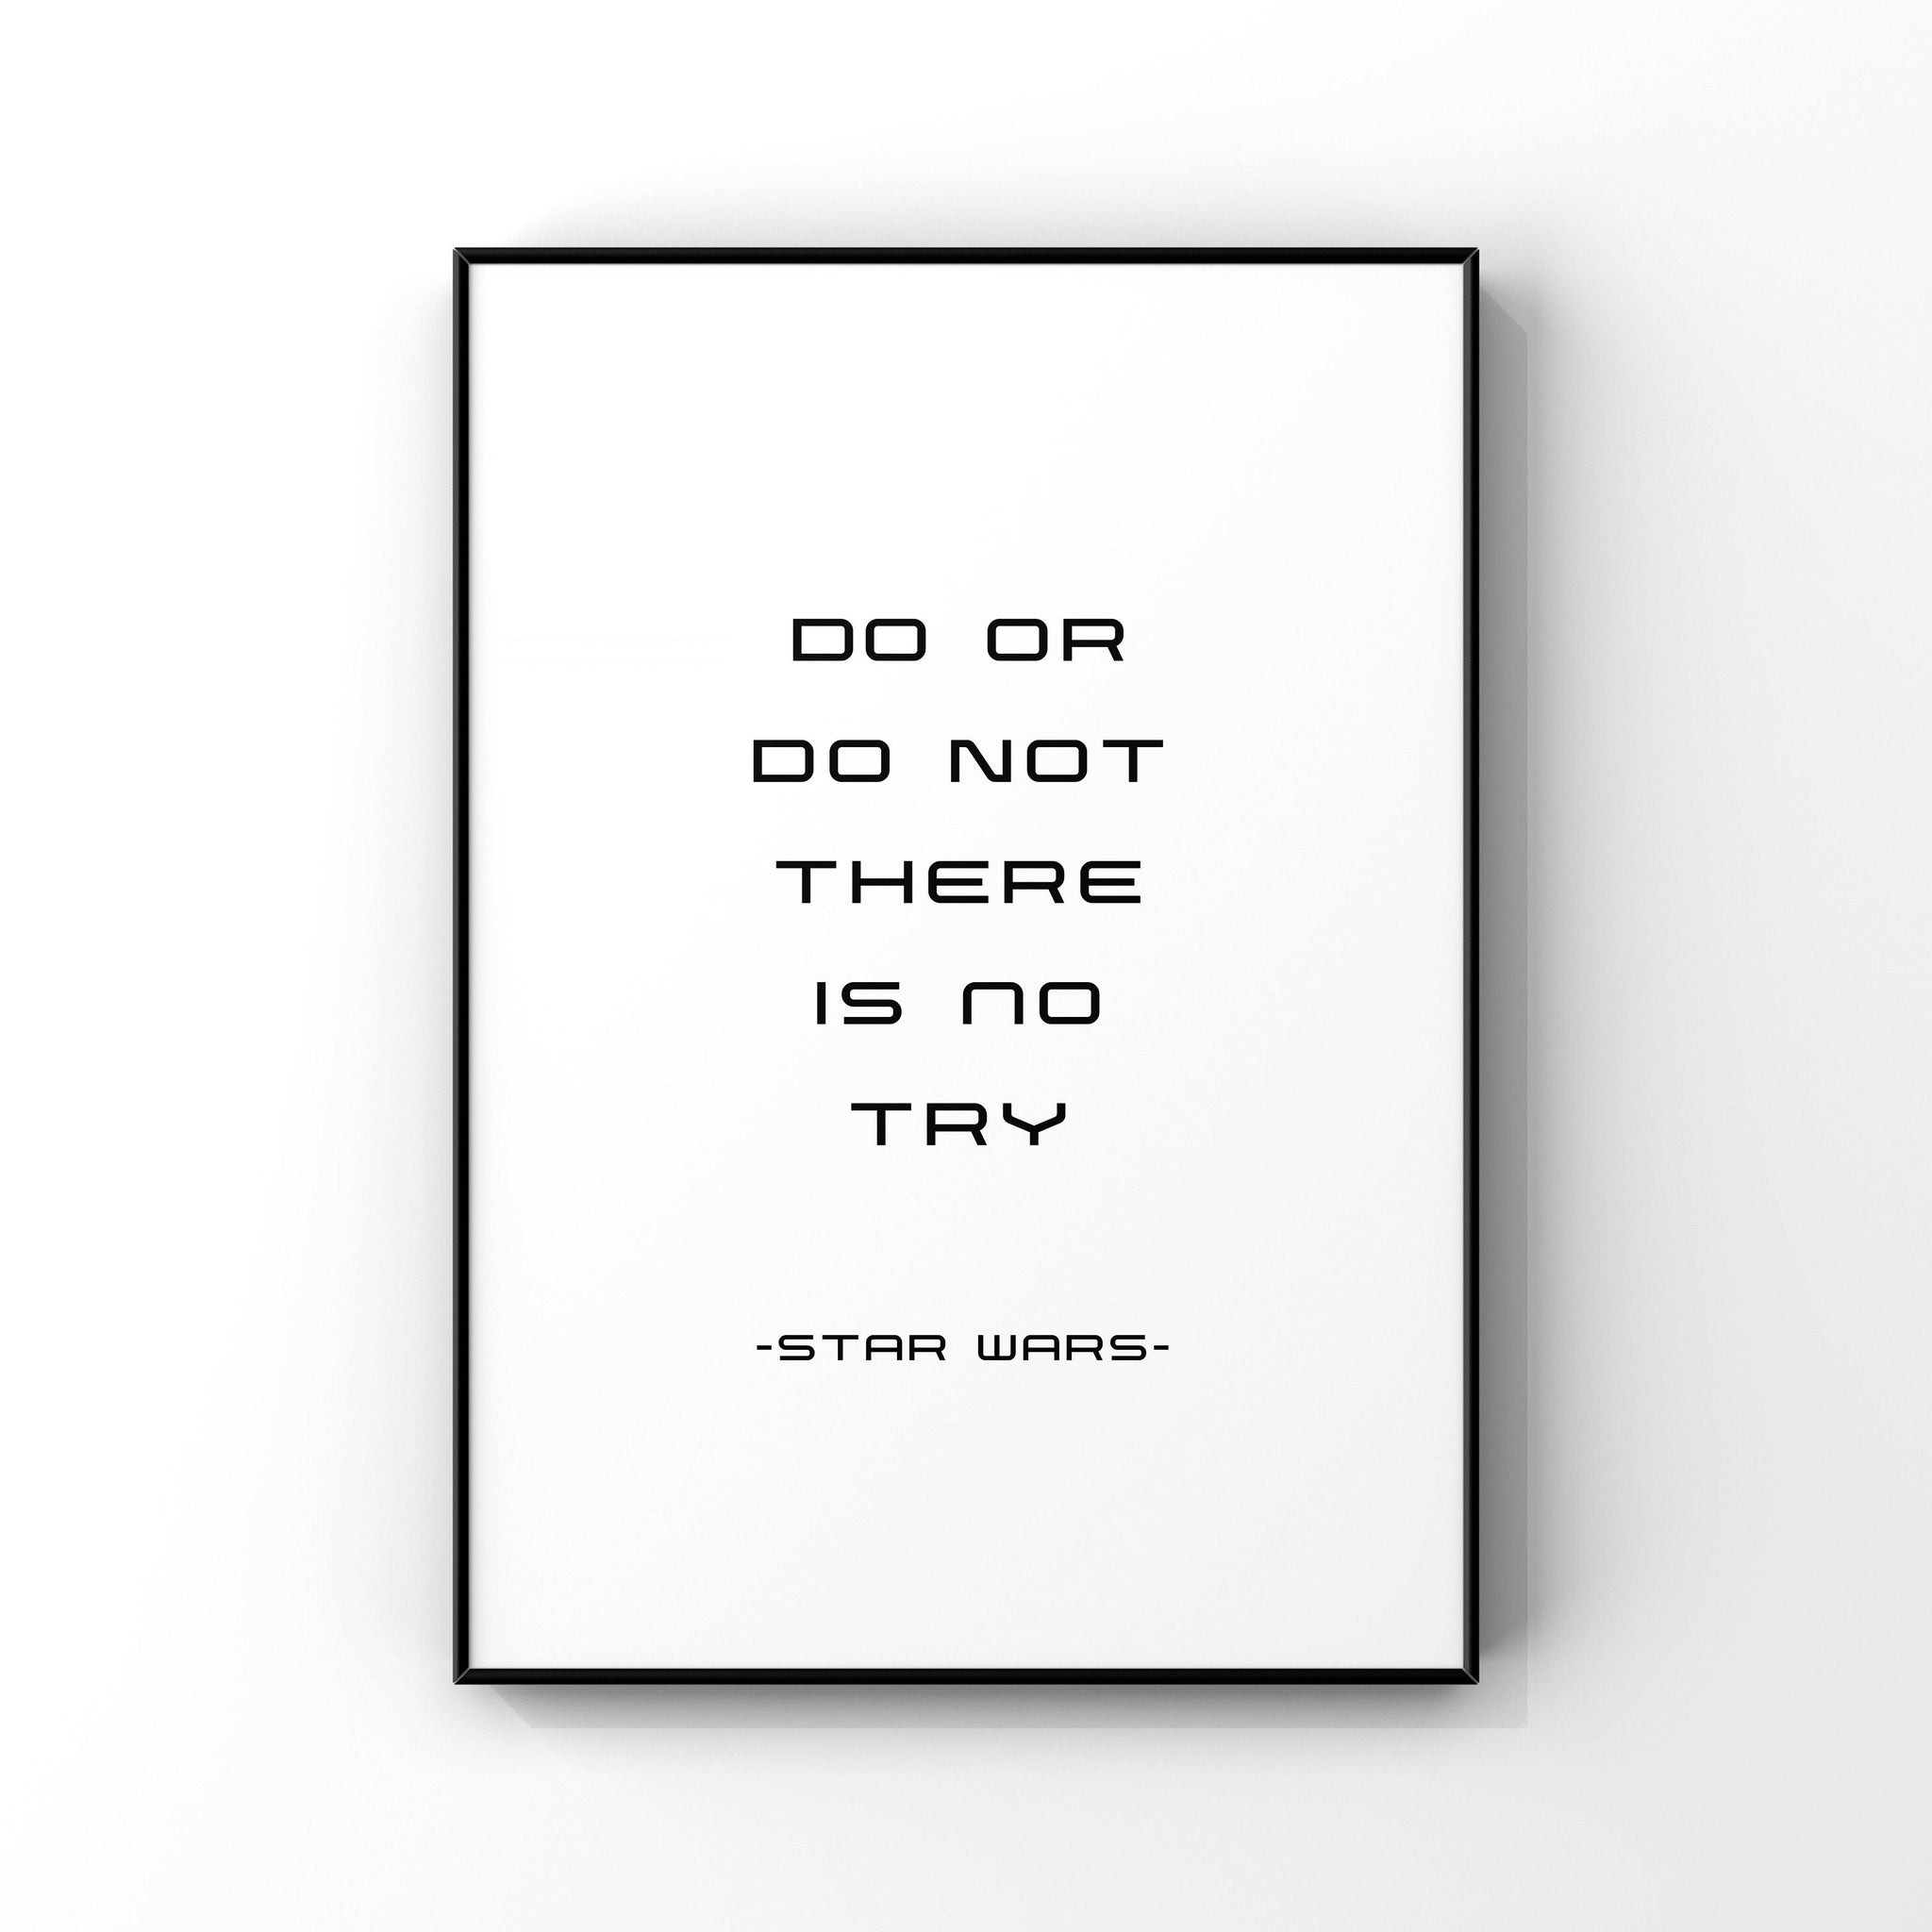 Do or do not there is not try, Yoda quote print, Master Yoda quote, Star Wars wall art, Star Wars bedroom decor, Jedi master, Inspirational